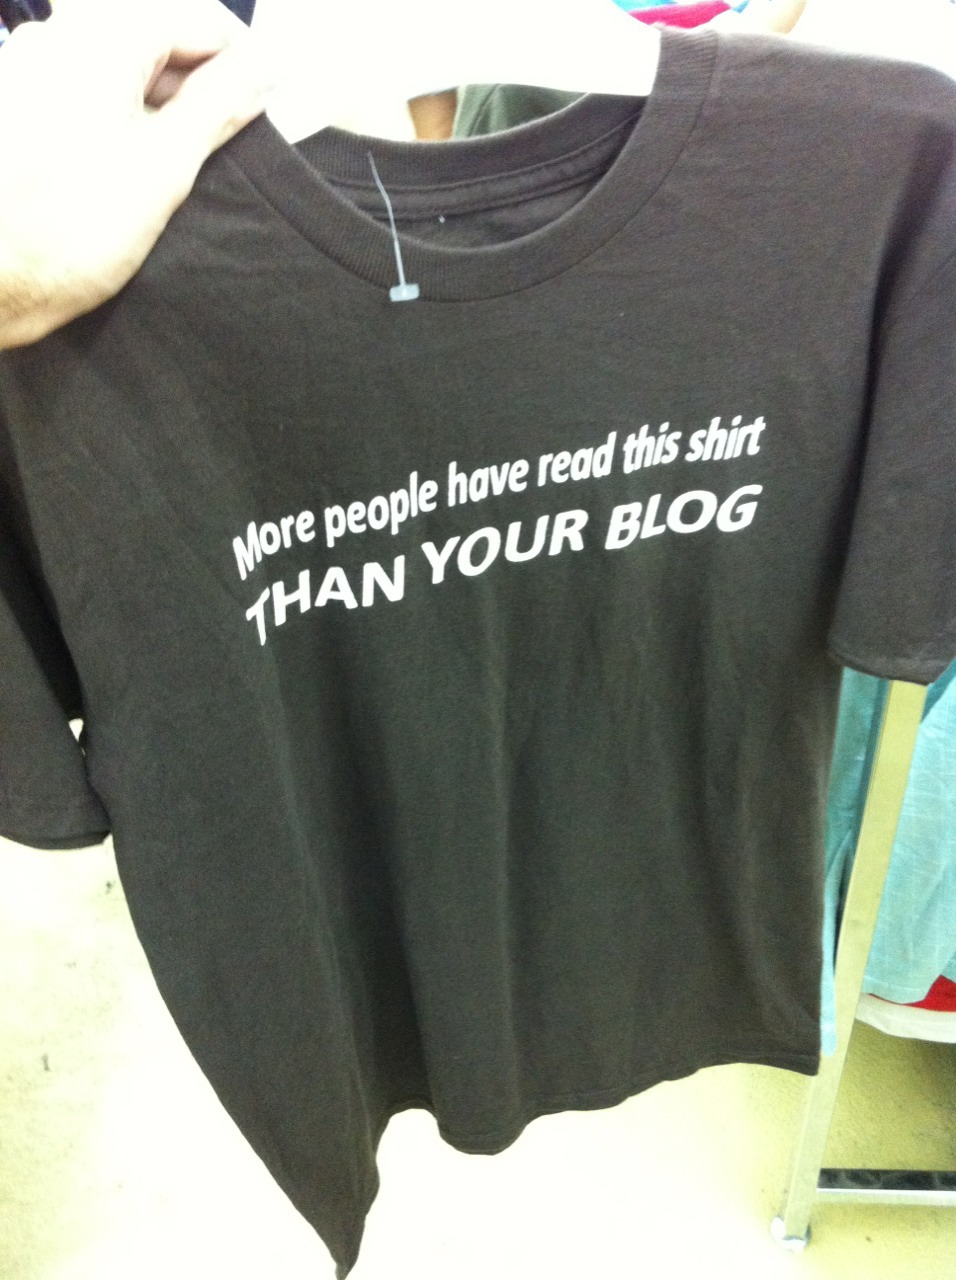 How dare you!  I have a very prestigious blog, sir!